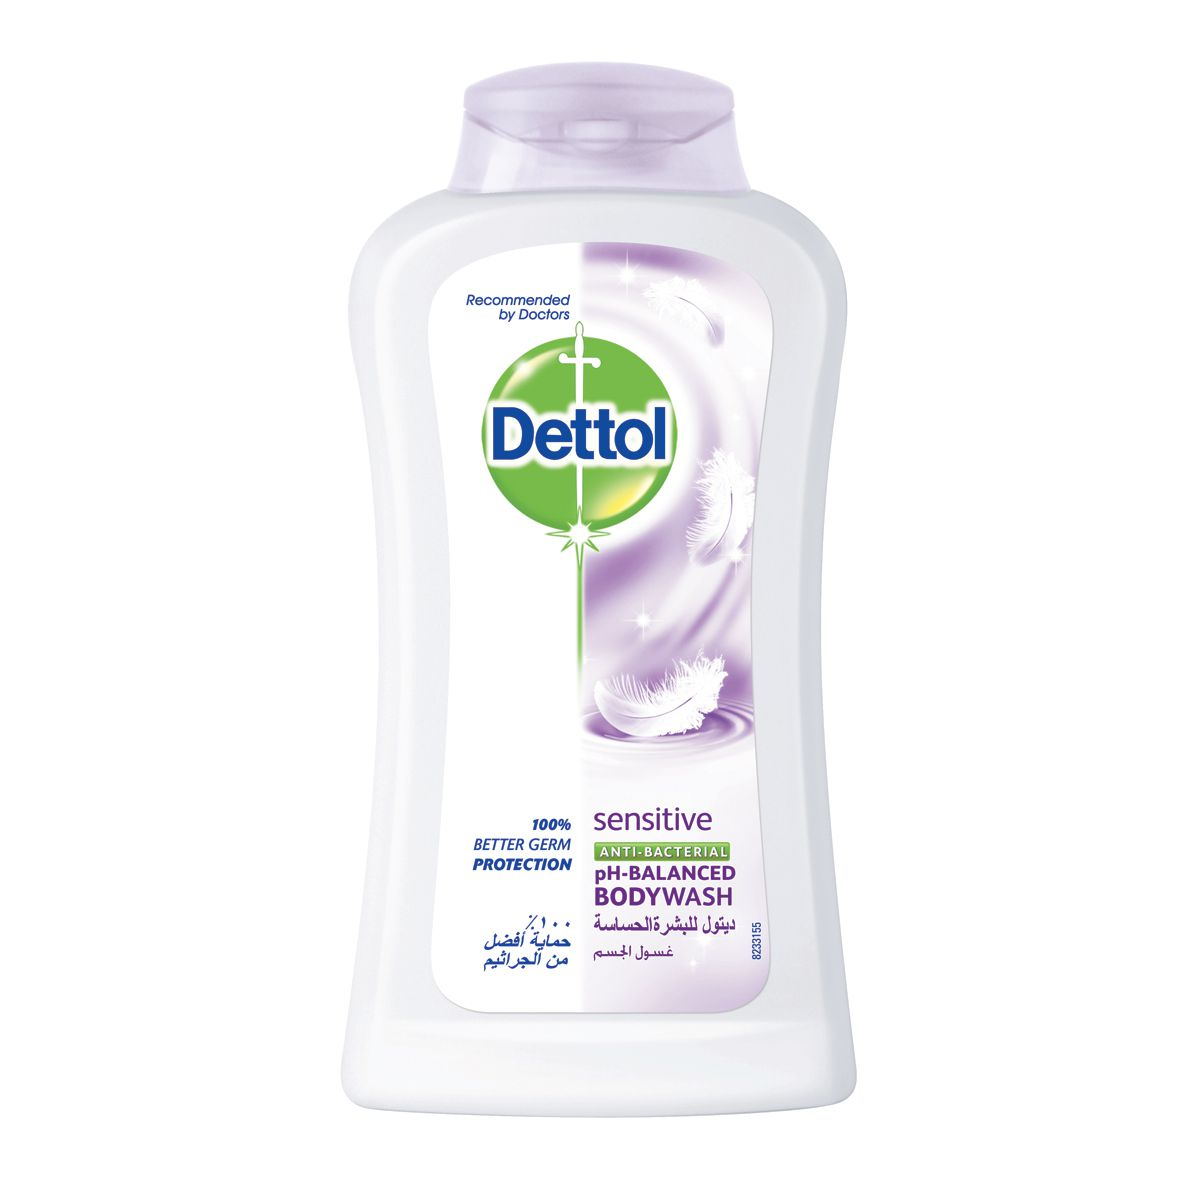 Dettol Sensitive Anti-Bacterial Body Wash - 250ml